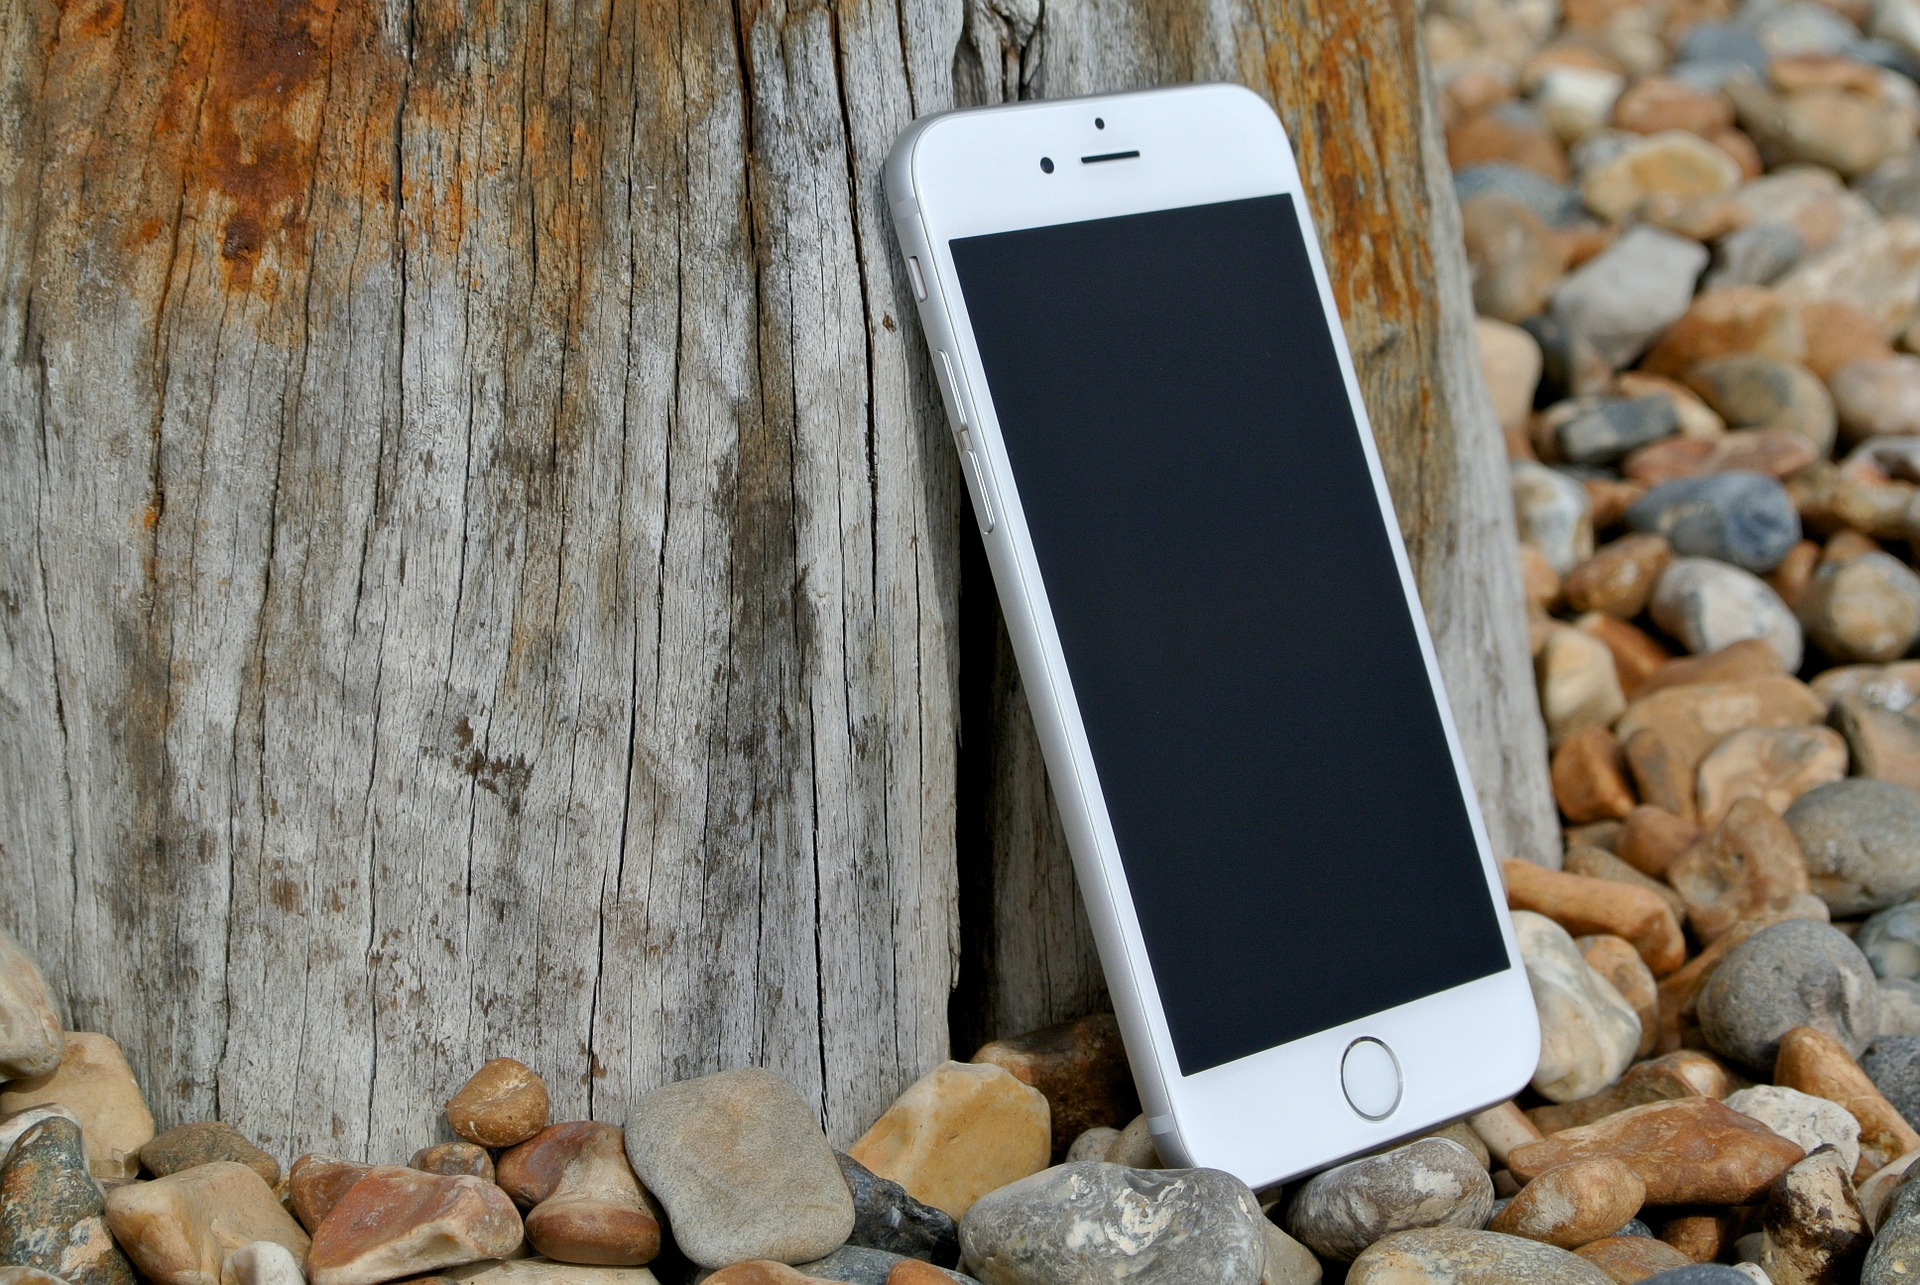 Is the iPhone Built to Be Environmentally Friendly?